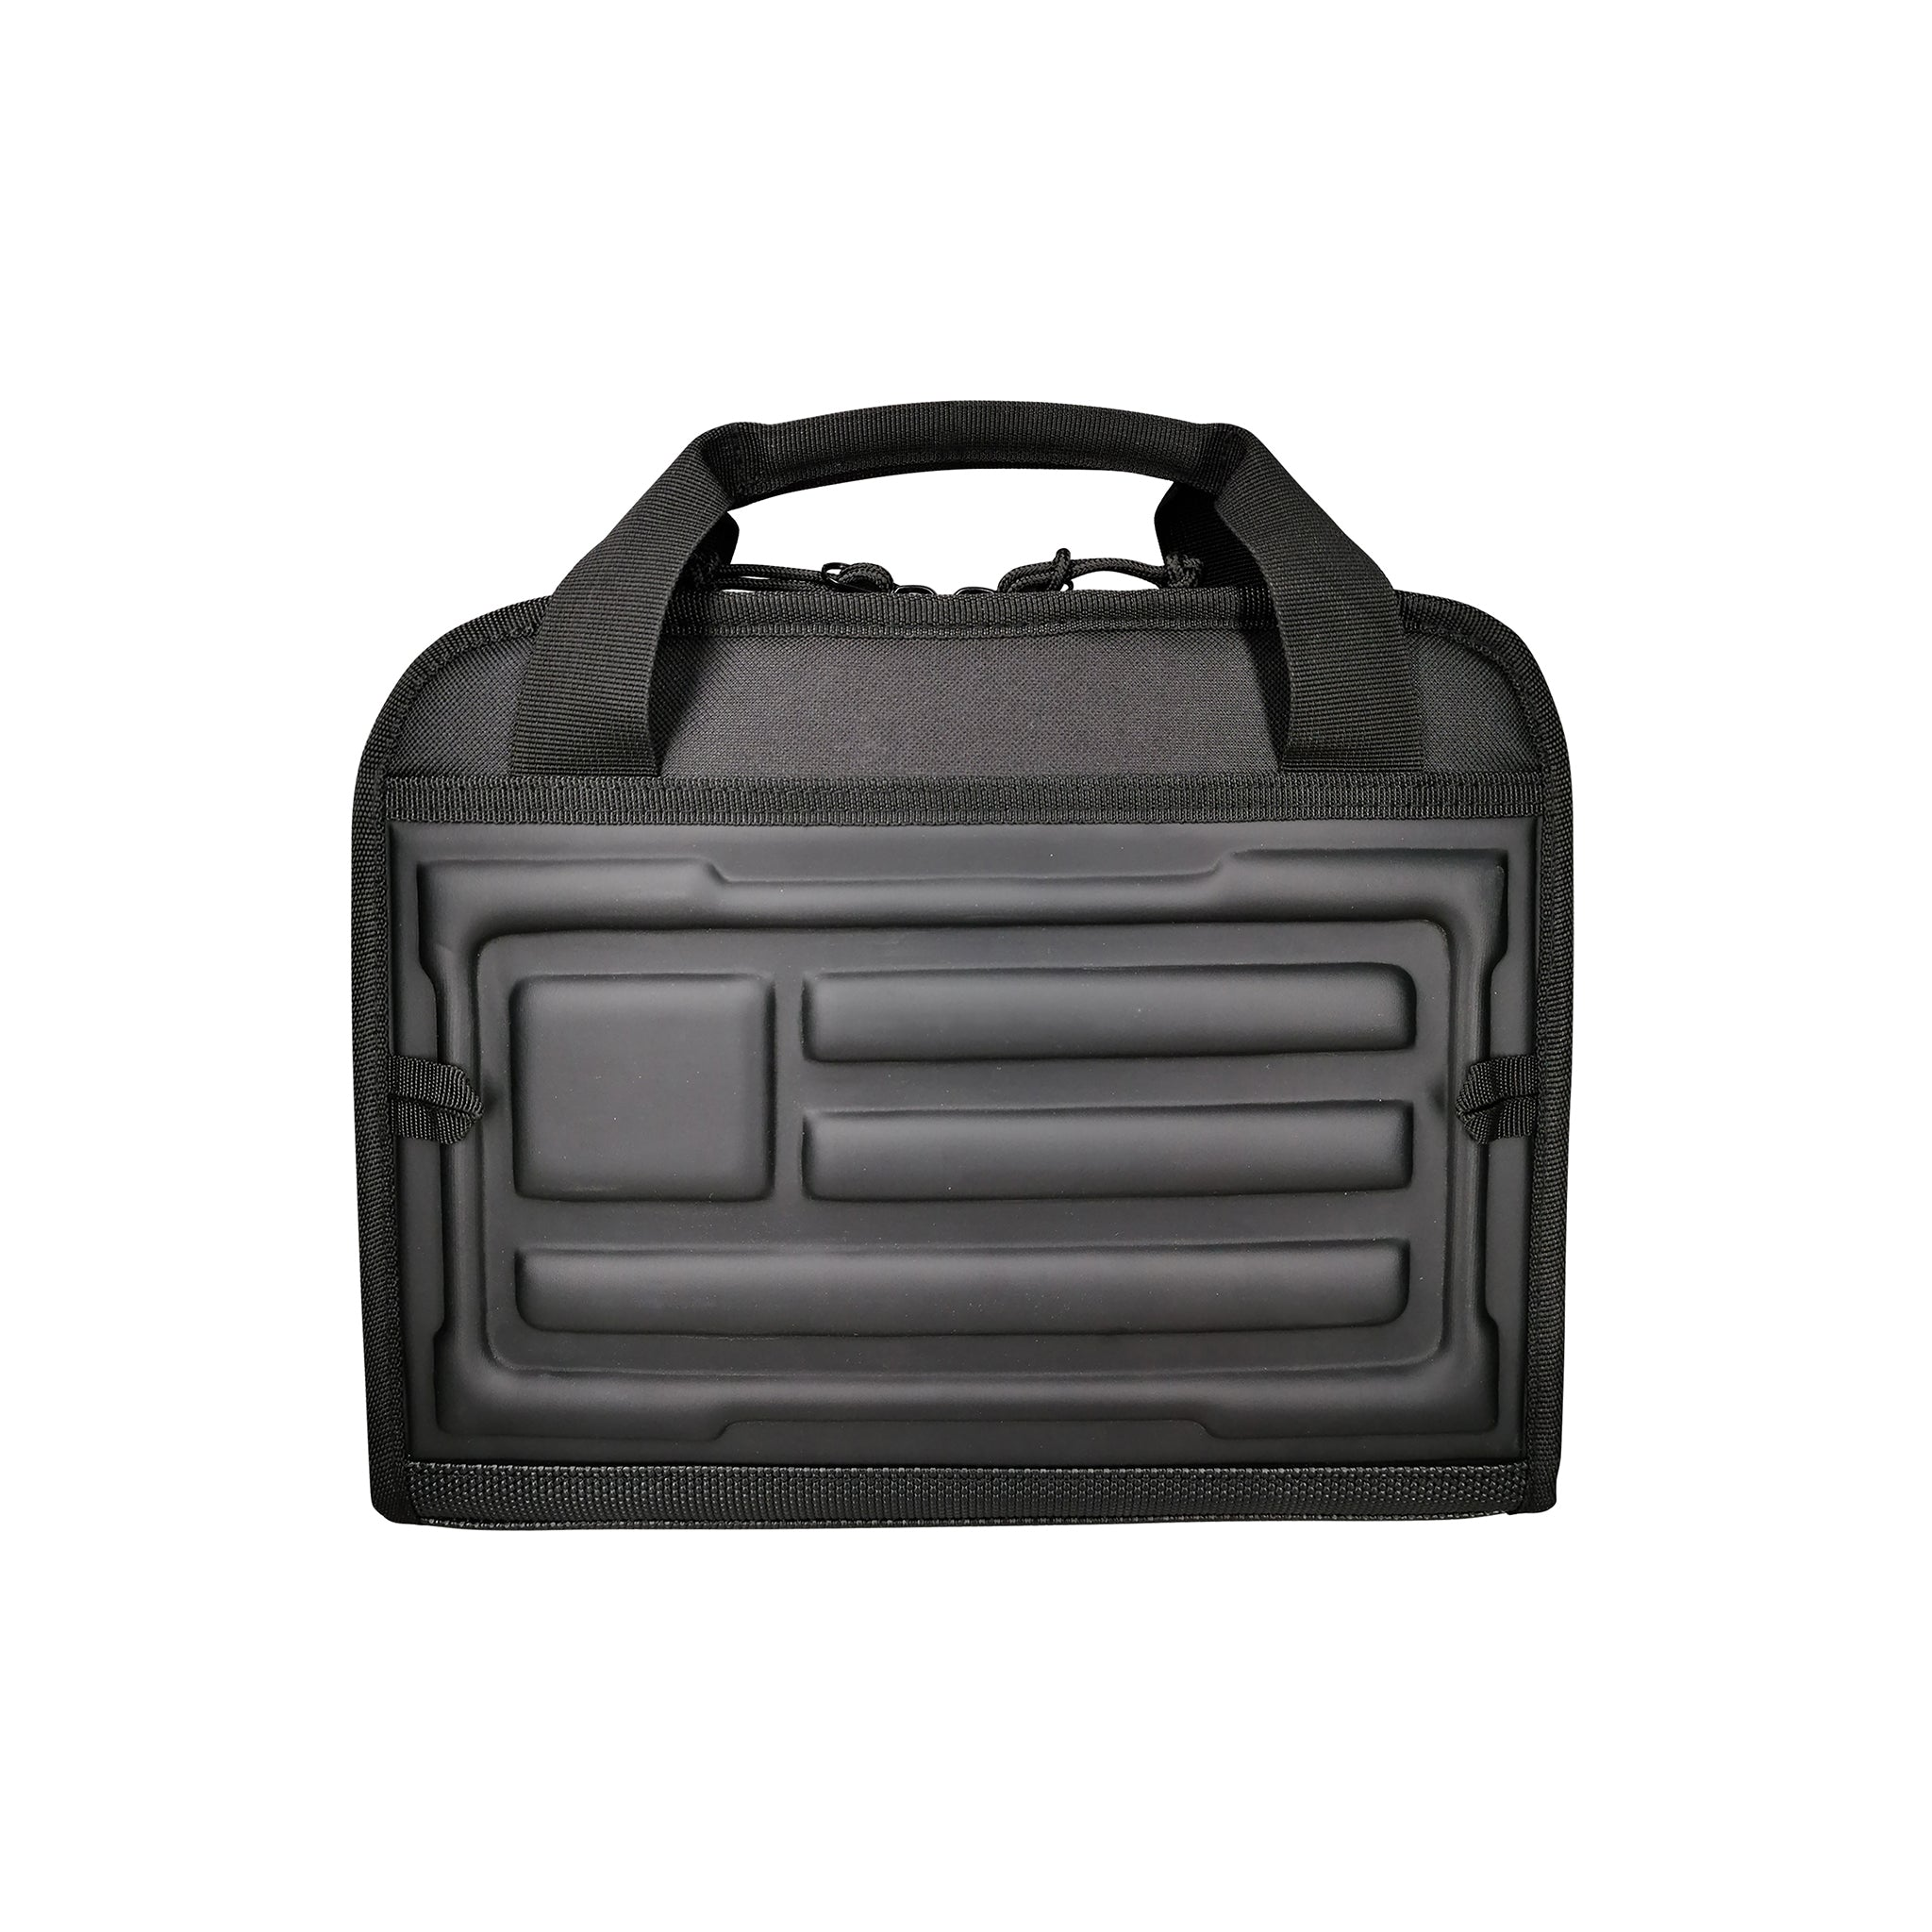 EVA Tactical Pistol Case